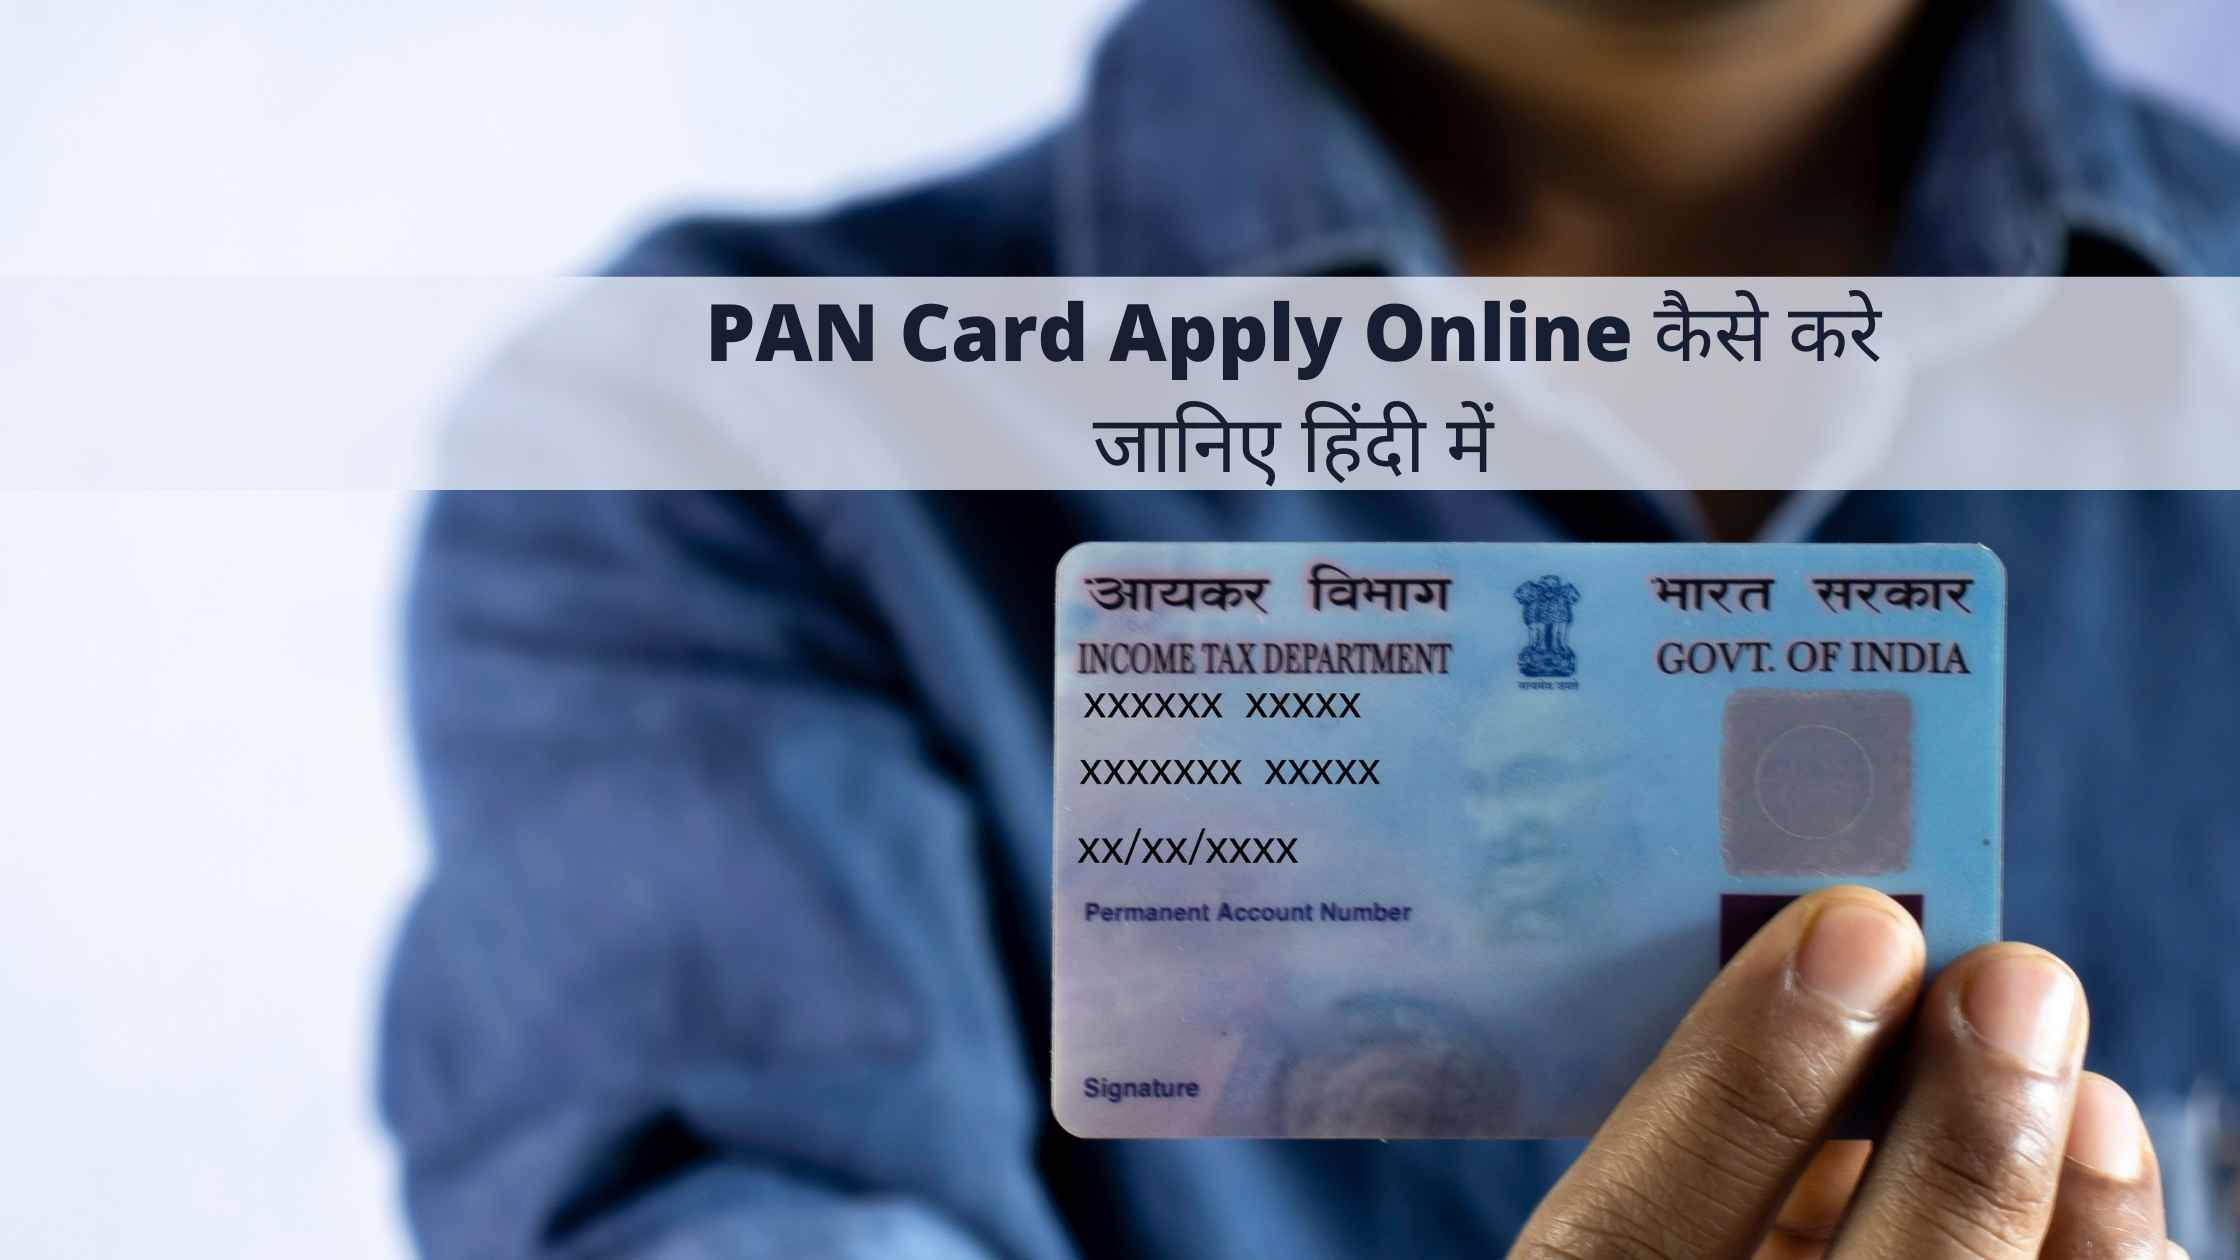 pan card apply online kaise kare